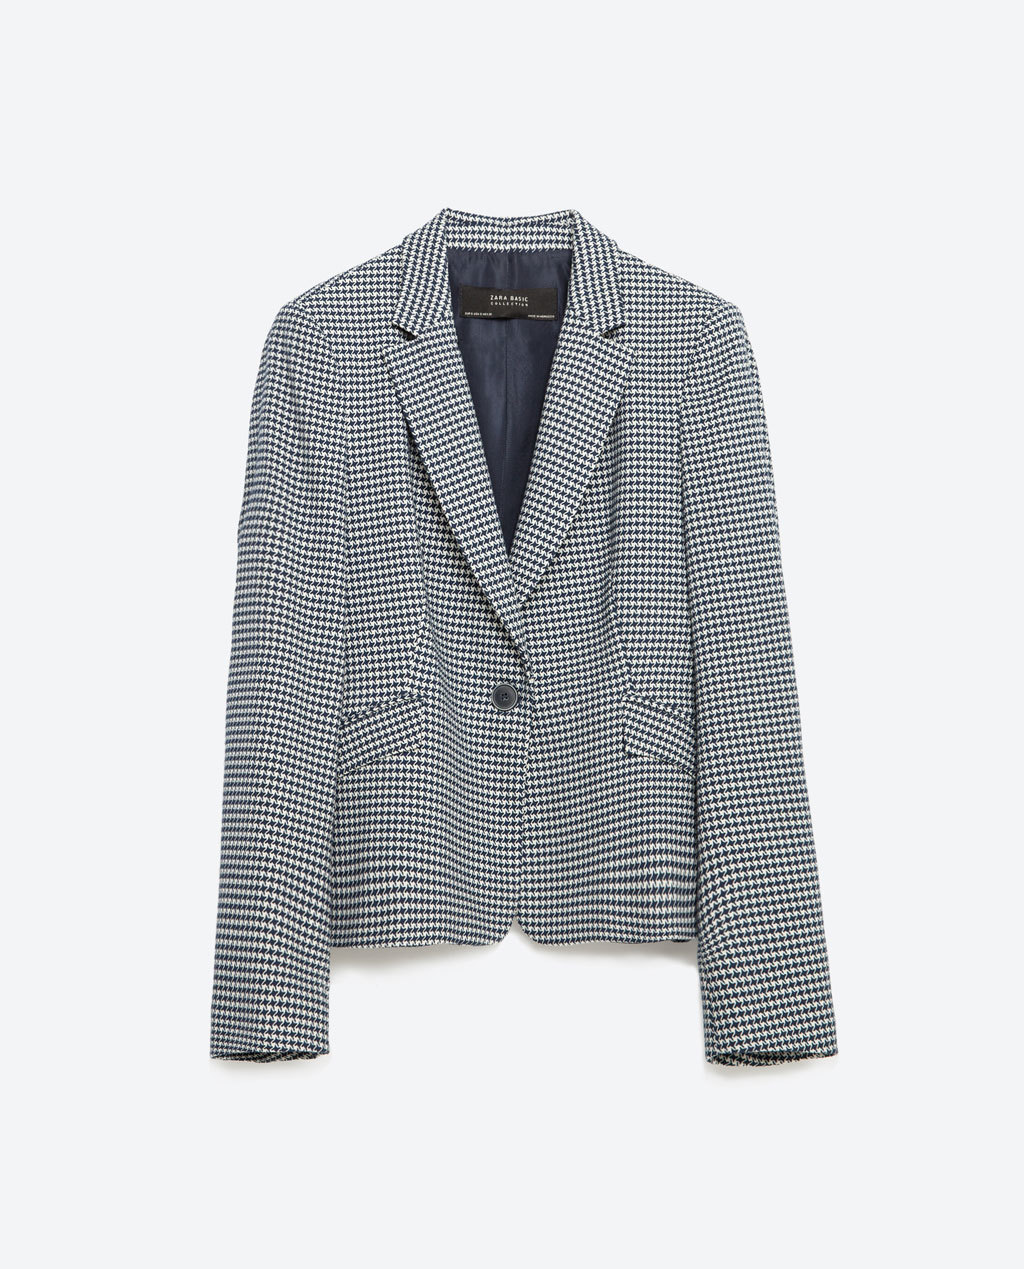 Buttoned Blazer - pattern: horizontal stripes; style: single breasted blazer; collar: standard lapel/rever collar; secondary colour: white; predominant colour: mid grey; occasions: evening, work; length: standard; fit: tailored/fitted; fibres: polyester/polyamide - 100%; sleeve length: long sleeve; sleeve style: standard; collar break: medium; pattern type: fabric; pattern size: light/subtle; texture group: woven light midweight; season: s/s 2016; wardrobe: investment